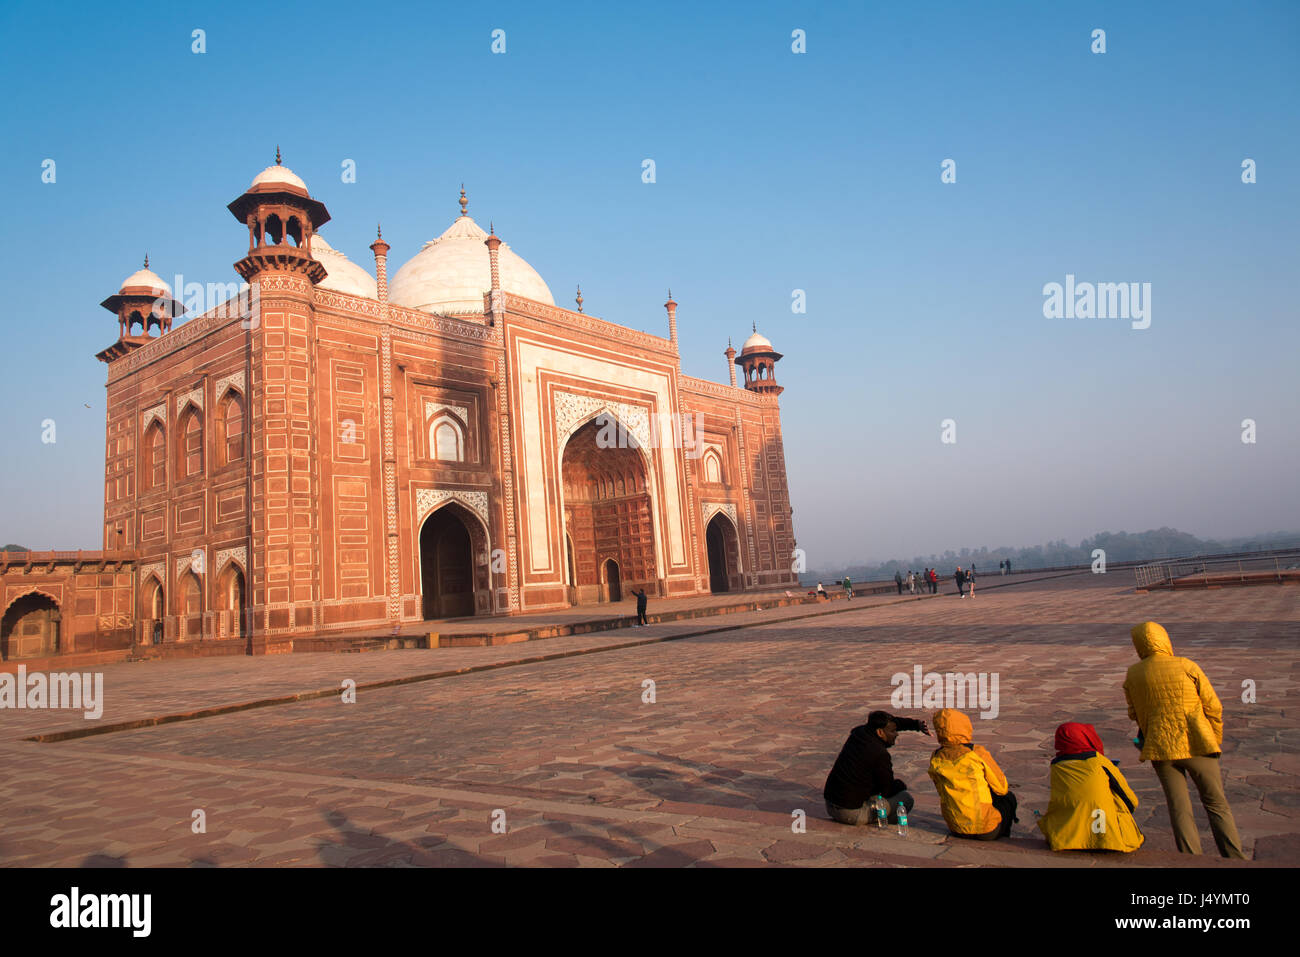 People enjoying the view of the Taj Mahal Mosque in Agra, India - Stock Image